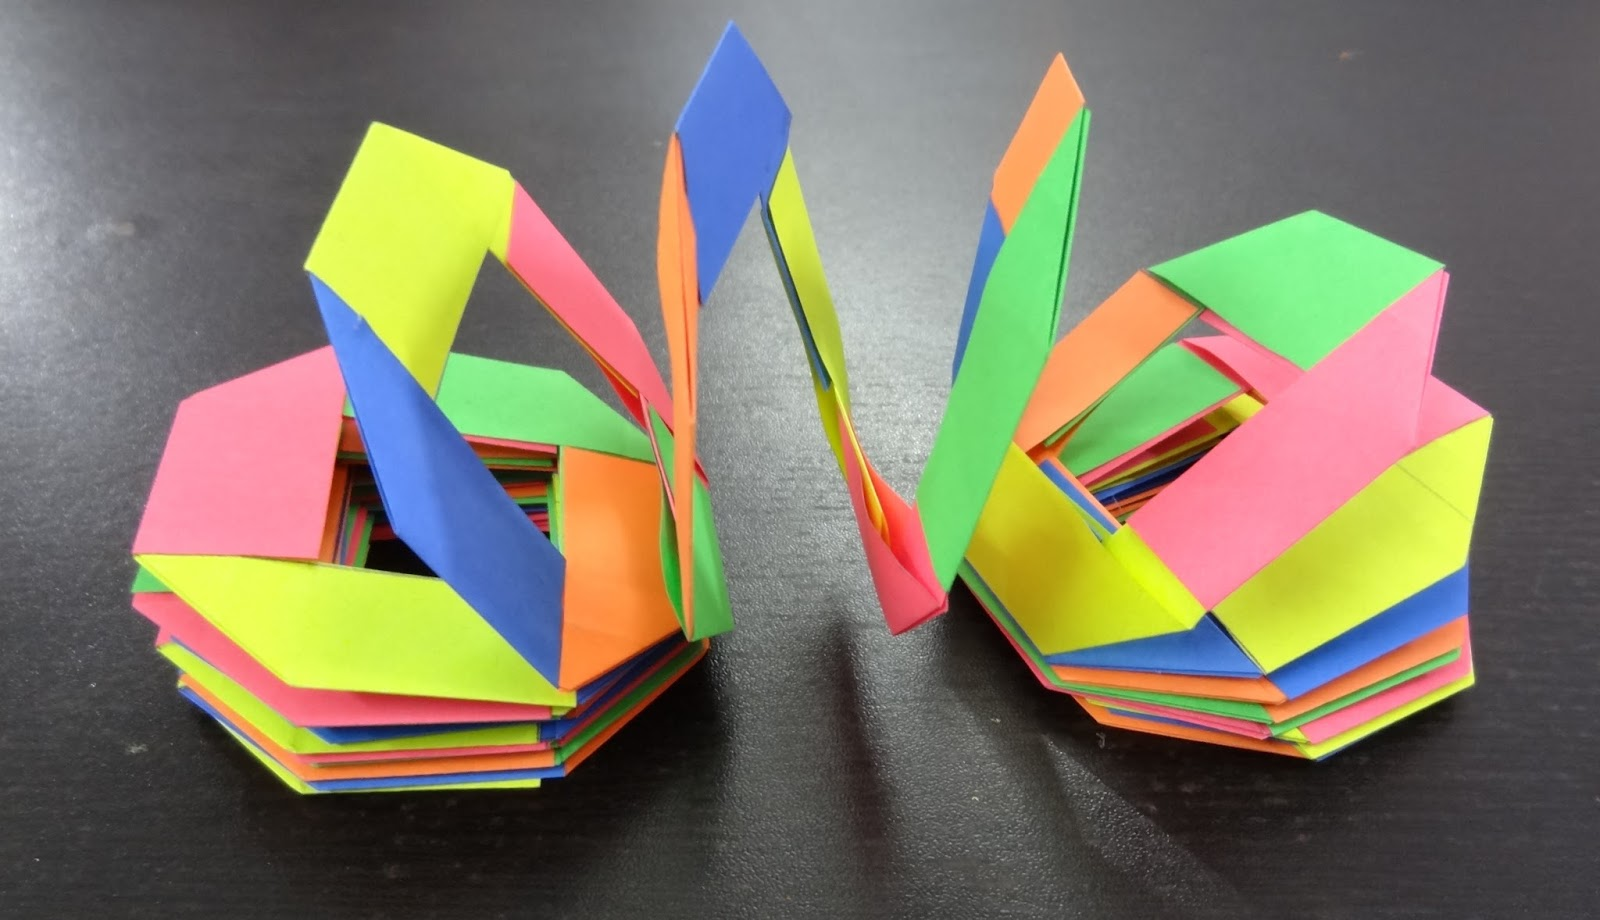 This Tutorial Presents An Innovative DIY Idea For Kids Children And Adults To Make Paper Toys